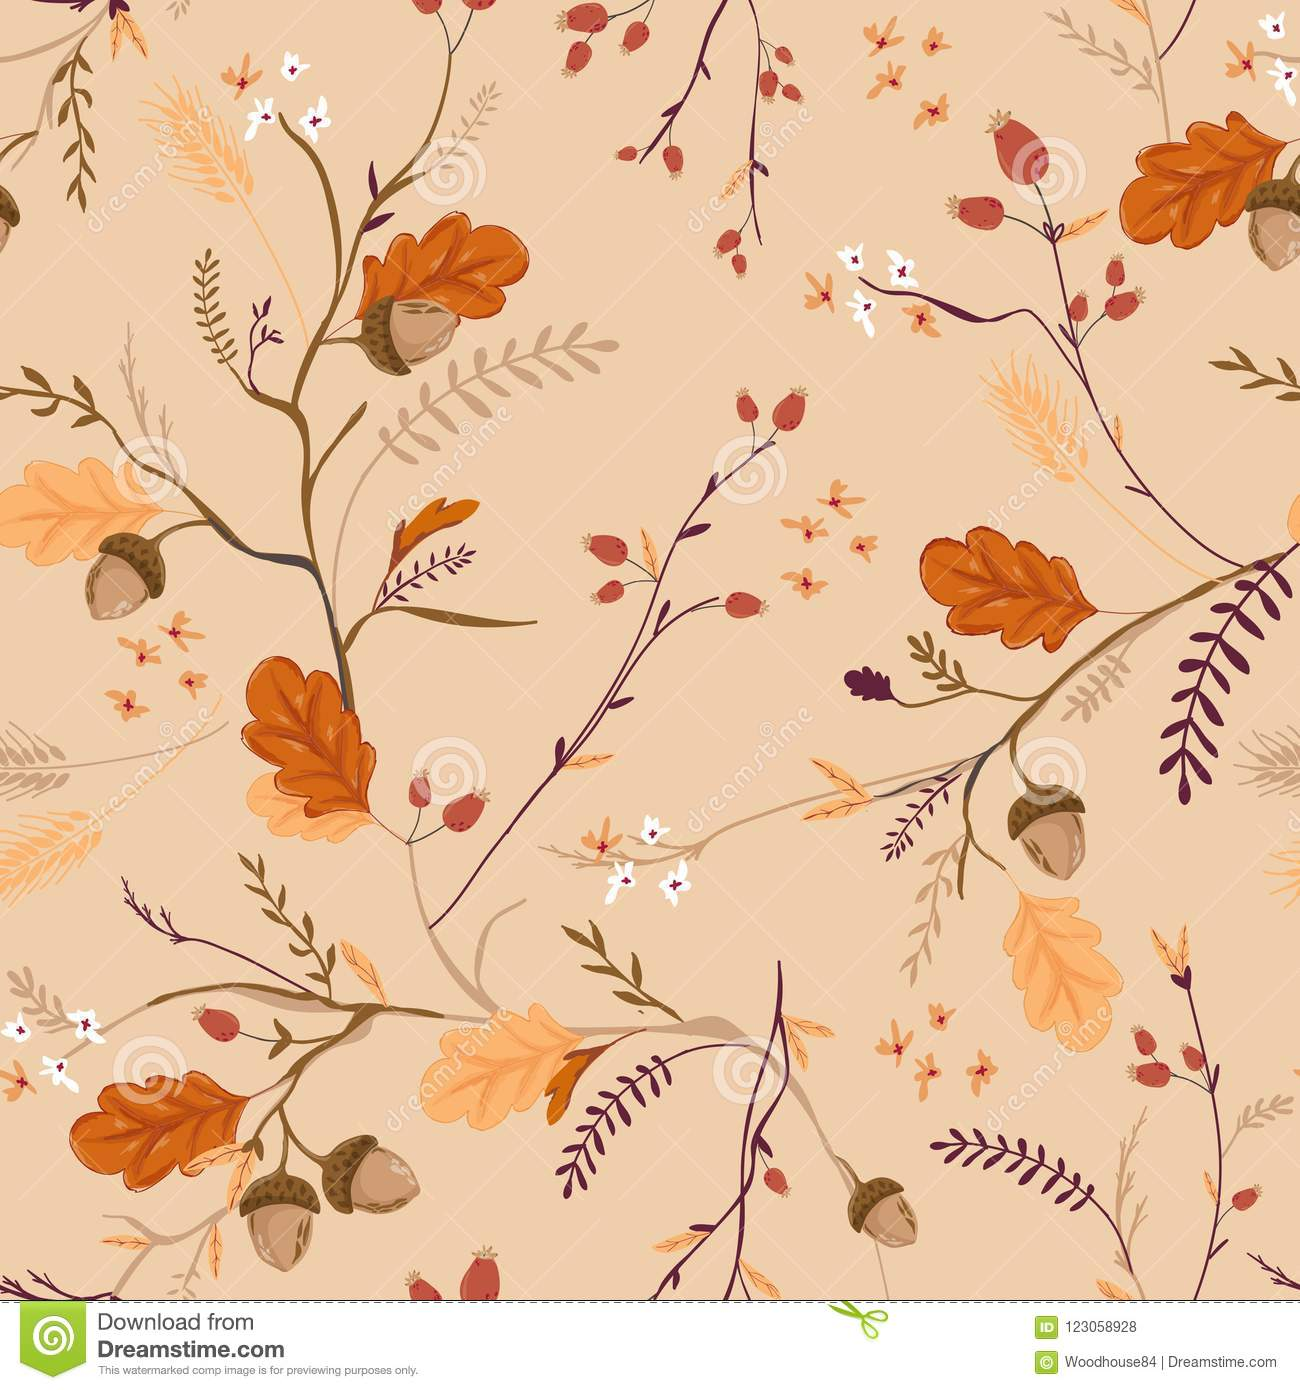 Autumn Floral Seamless Pattern with Acorns, Leaves and Flowers. Fall Vintage Nature Background for Textile, Wallpaper